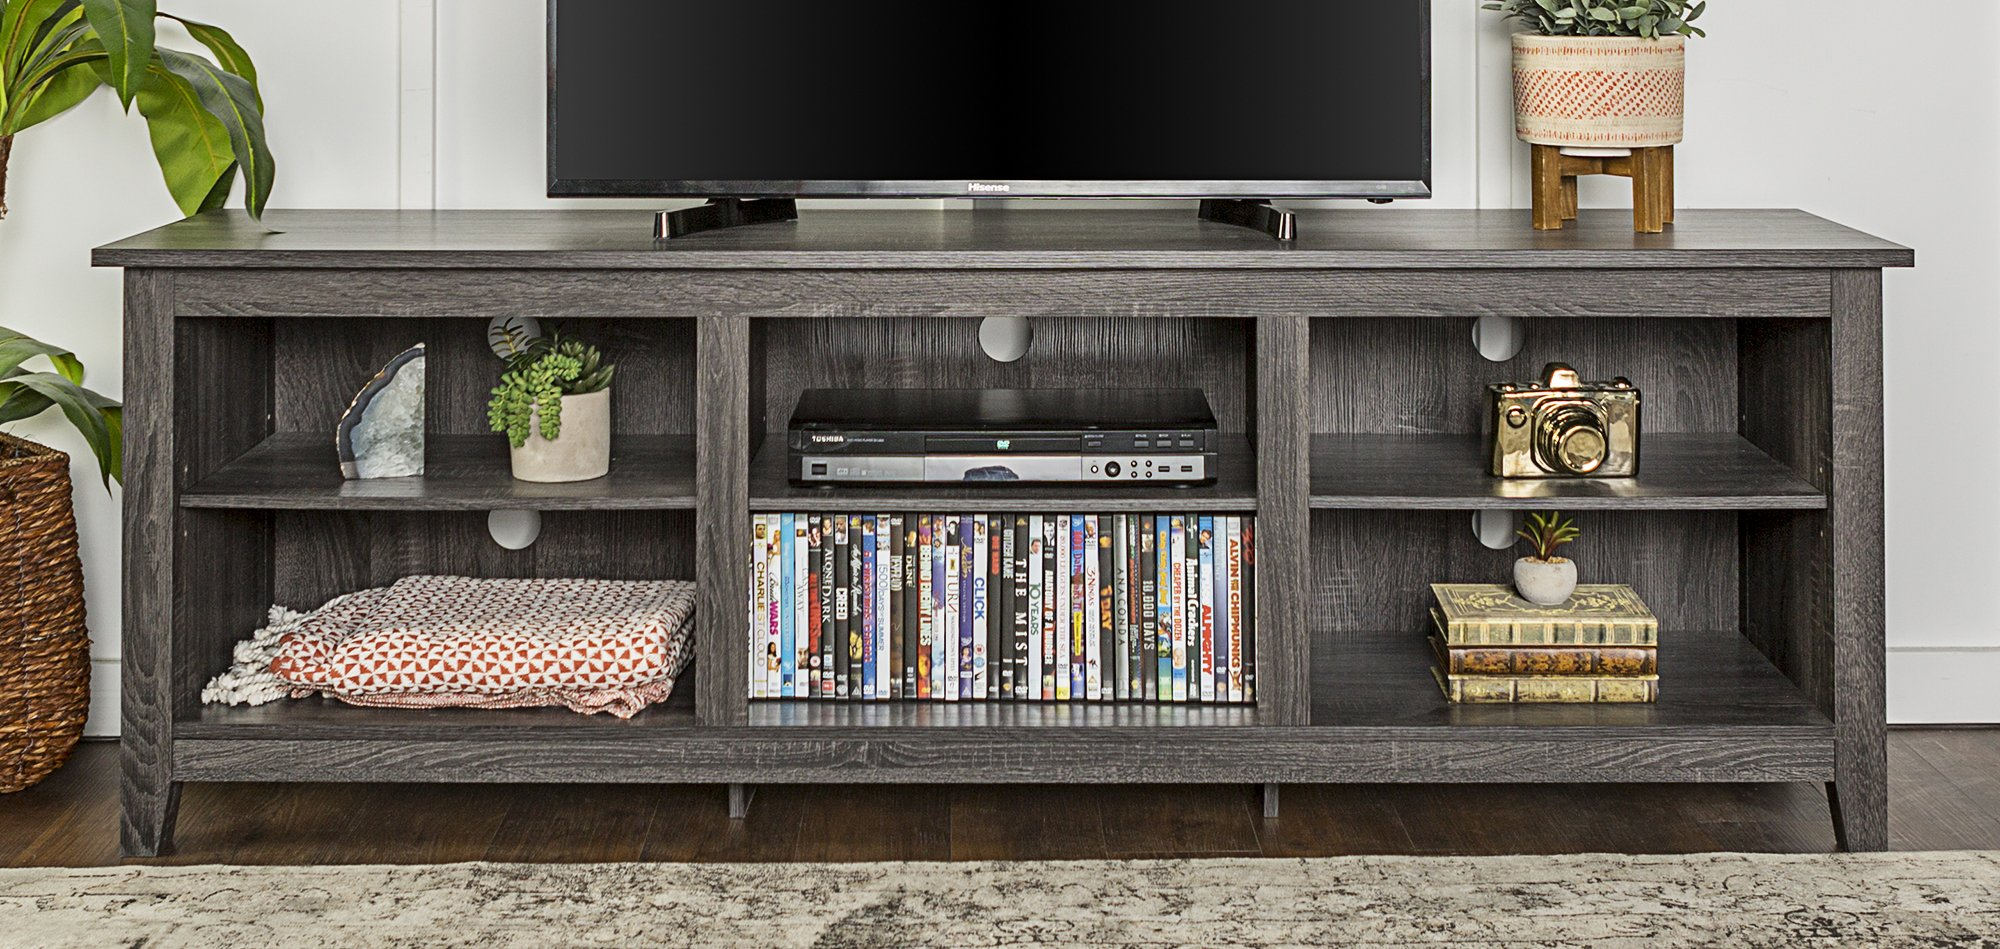 WE Furniture 70'' Wood Media TV Stand Storage Console - Charcoal